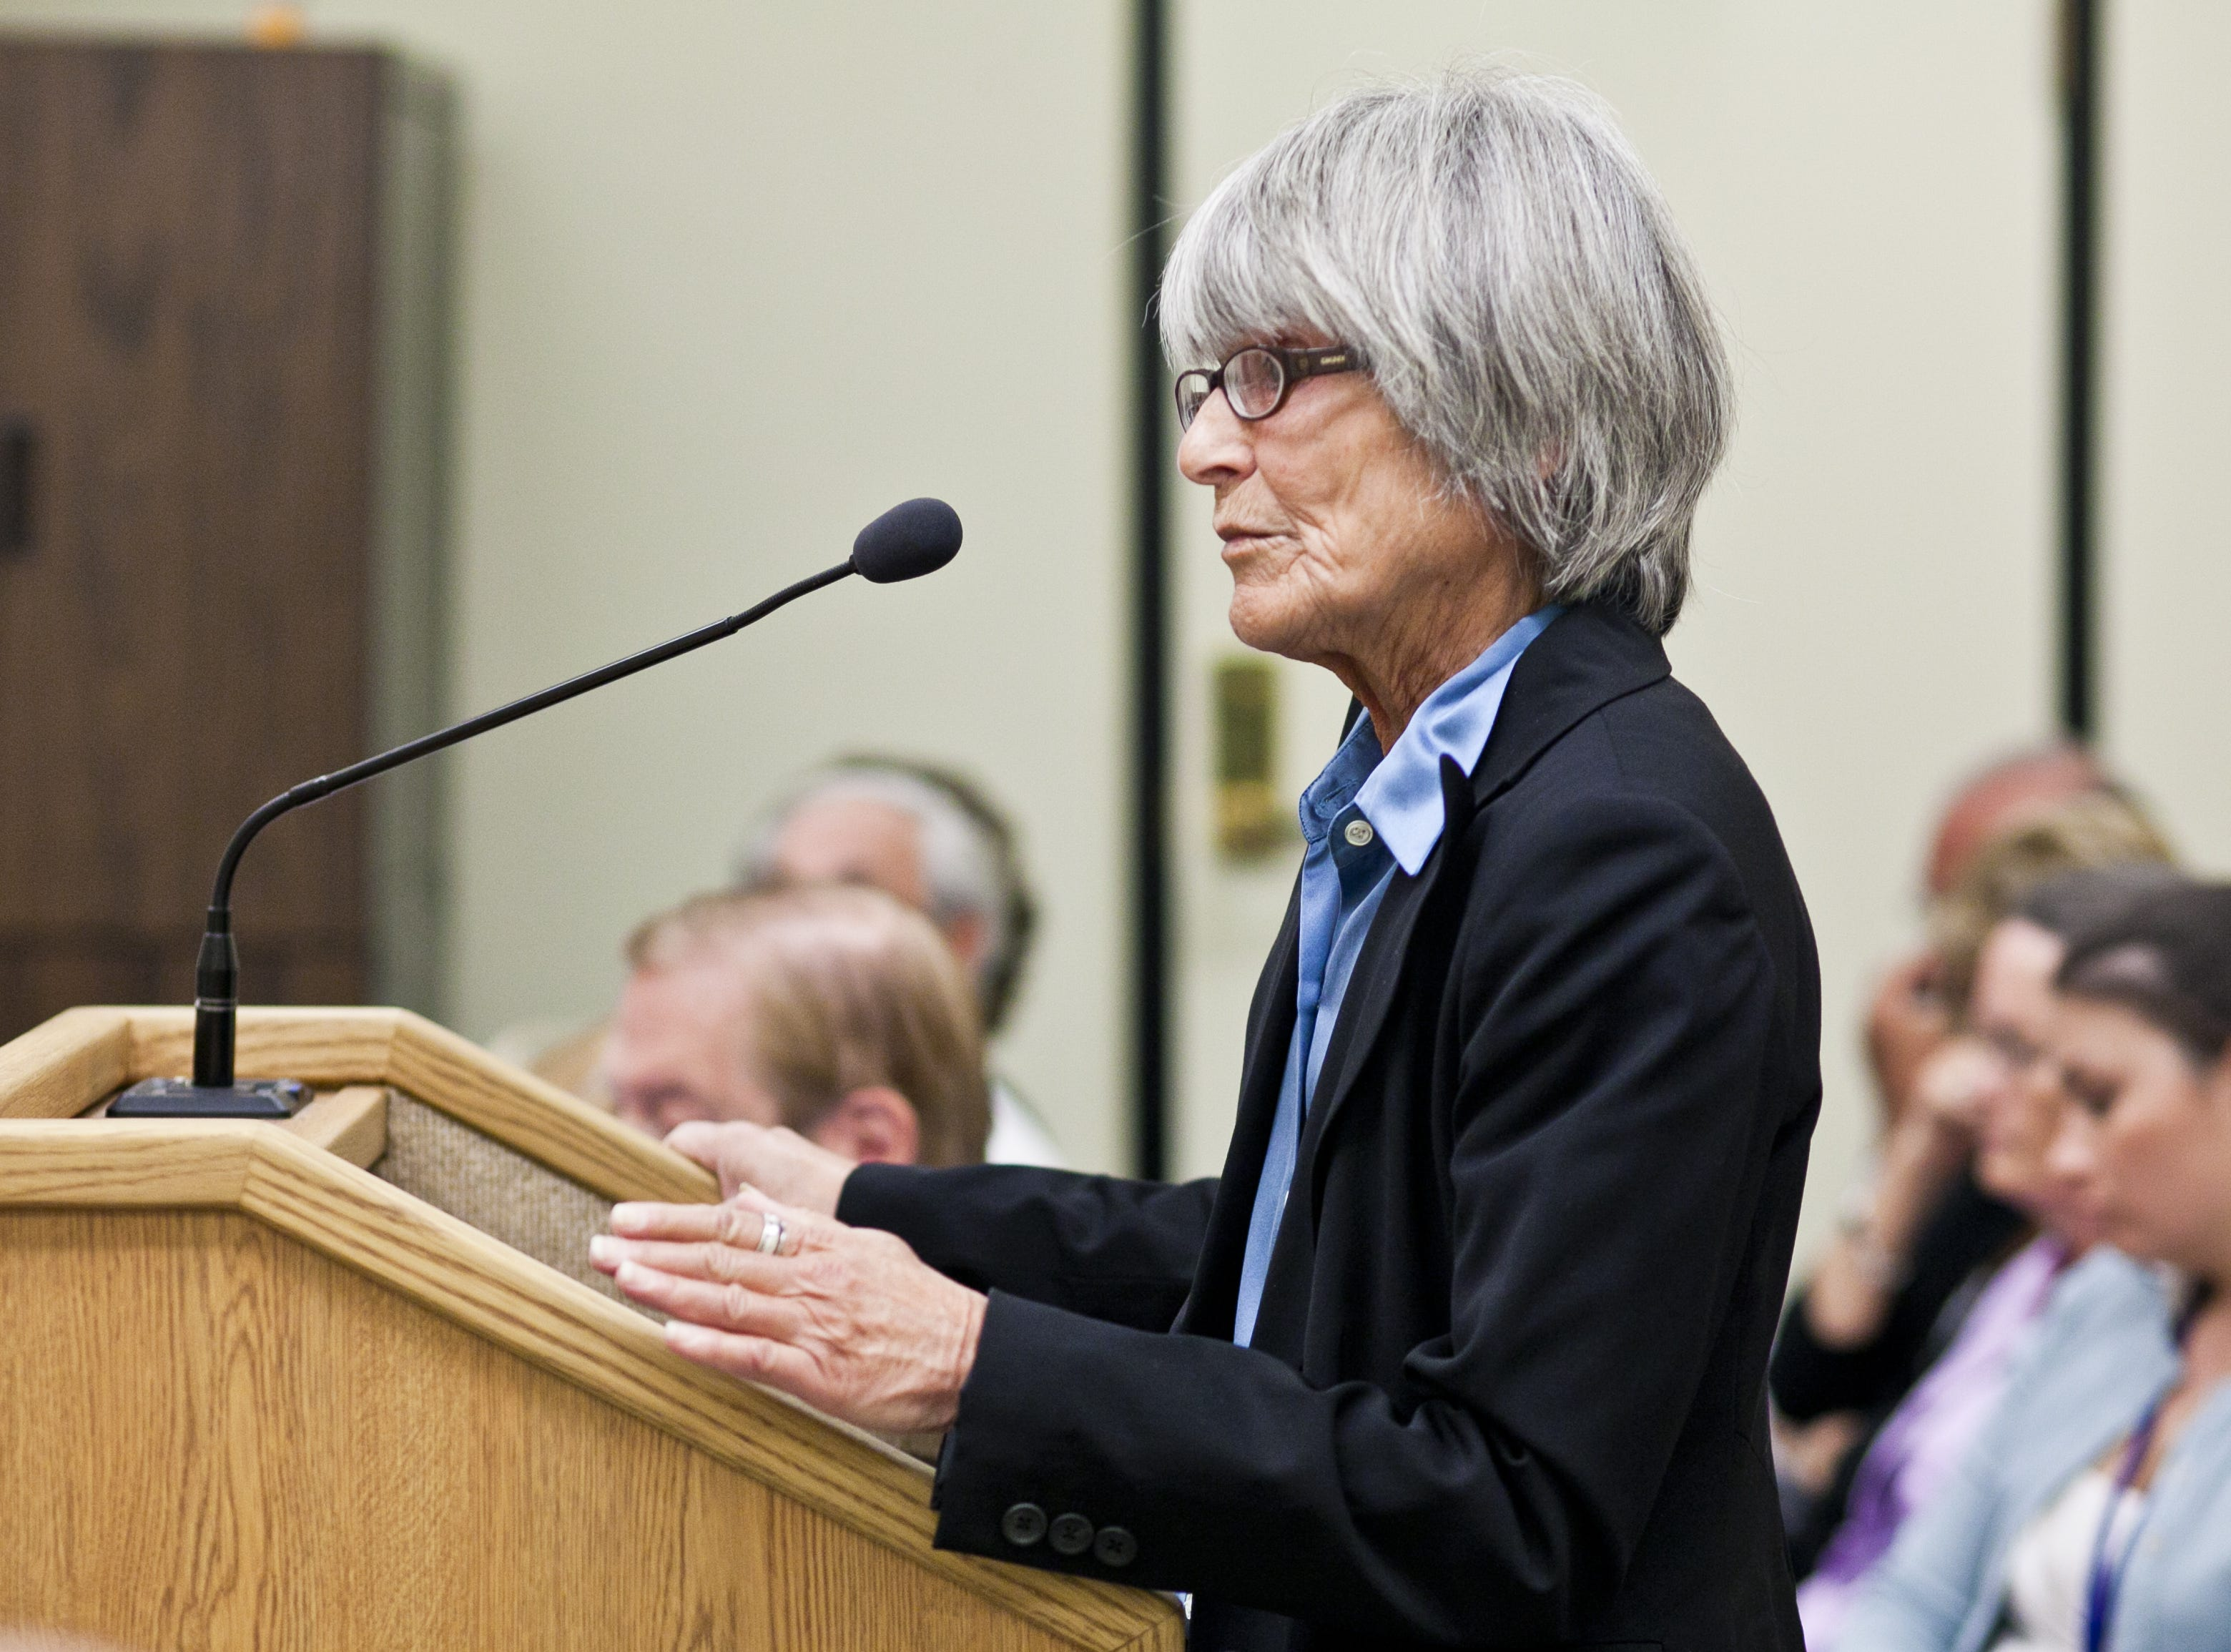 Judith Goldman, mother of Jacob Wideman, speaks on her son's behalf during his parole hearing at the Arizona Board of Executive Clemency in May 2011 in Phoenix.